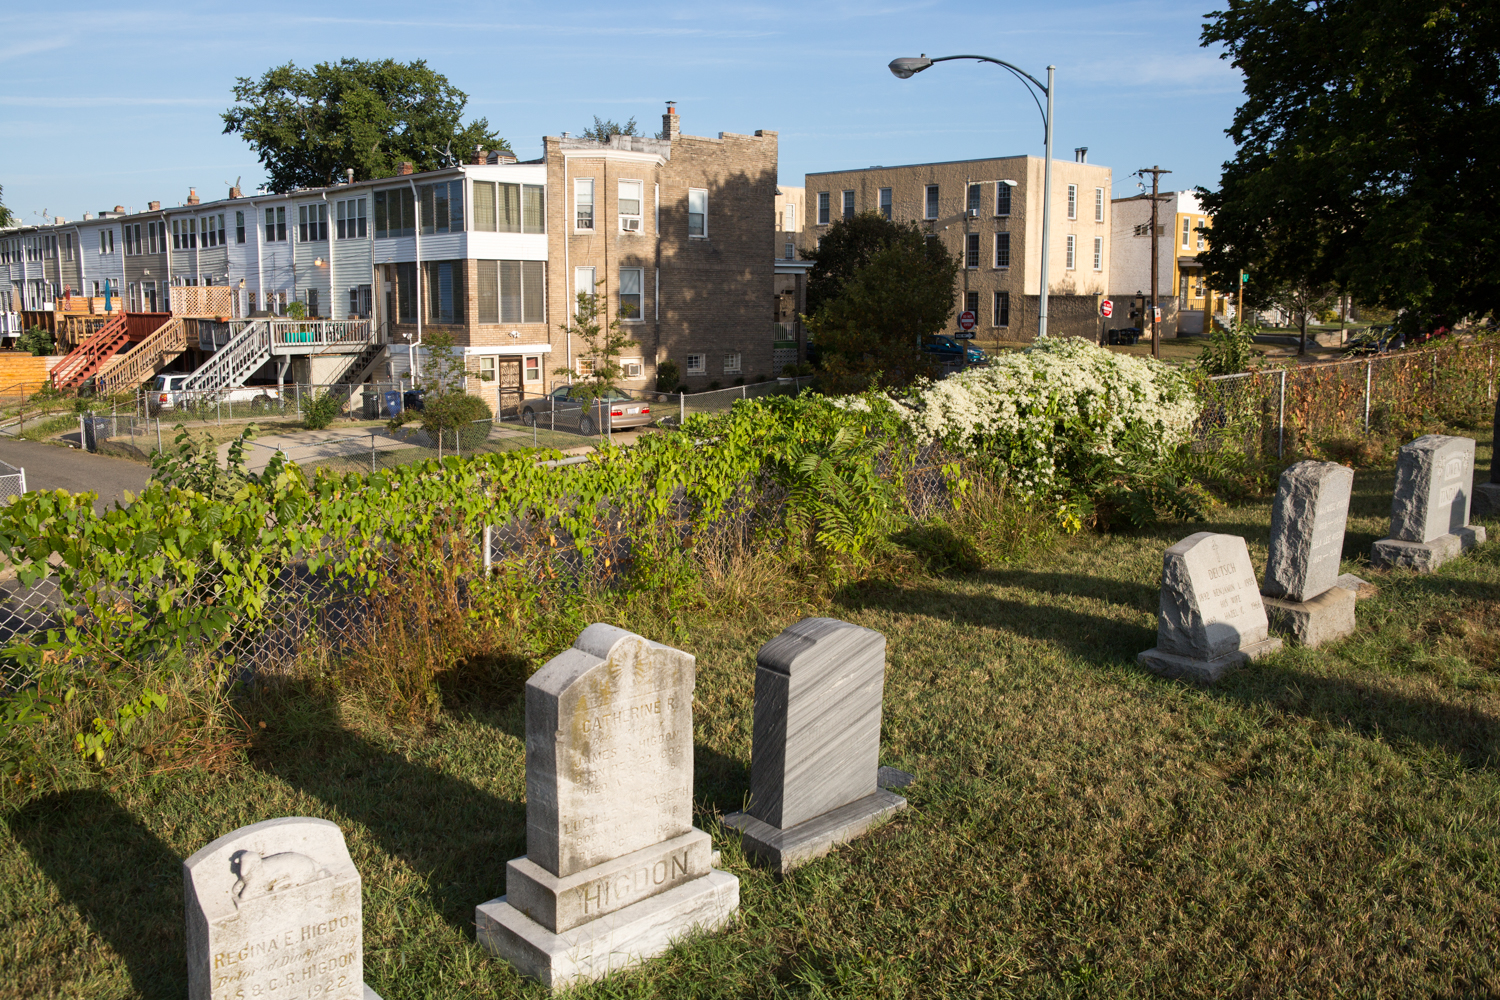 In Washington, D.C., the historic Congressional Cemetery is separated by a chain link fence along parts of 17th Street SE.